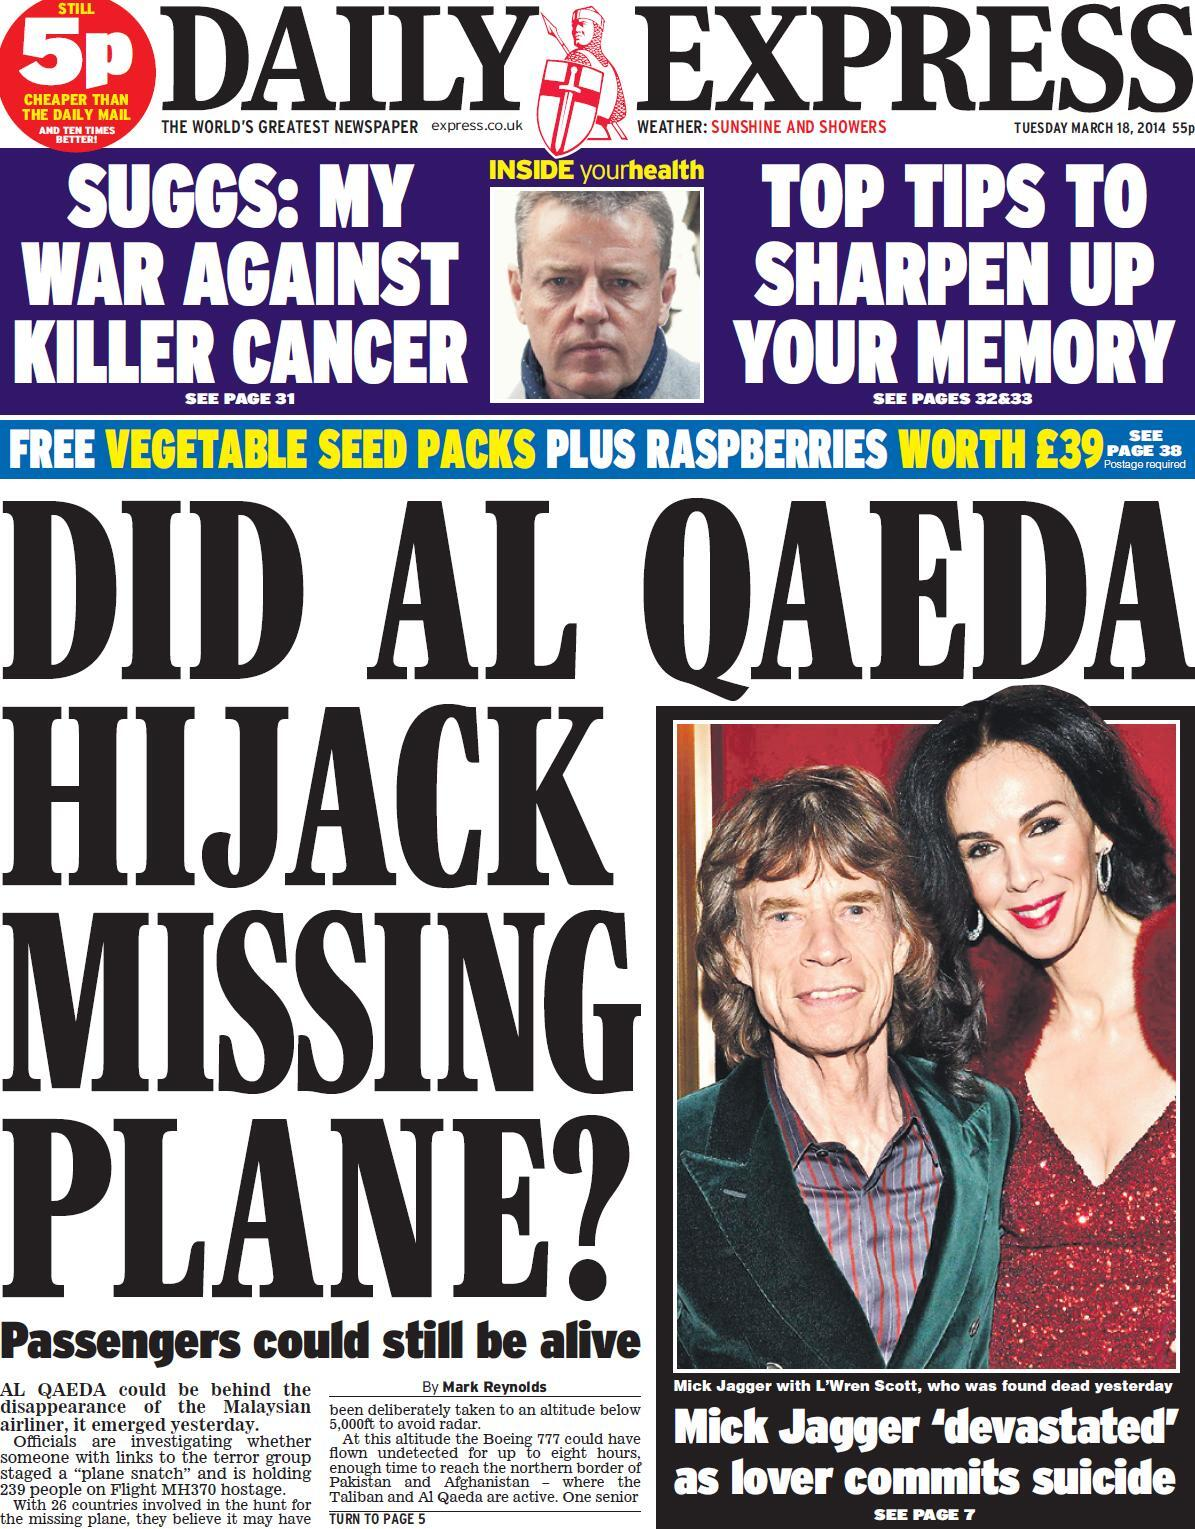 """Tuesday's Daily Express: """"Did Al Qaeda hijack missing plane?"""" http://t.co/2Frn8zjNZK #TomorrowsPapersToday #BBCpapers via @suttonnick"""